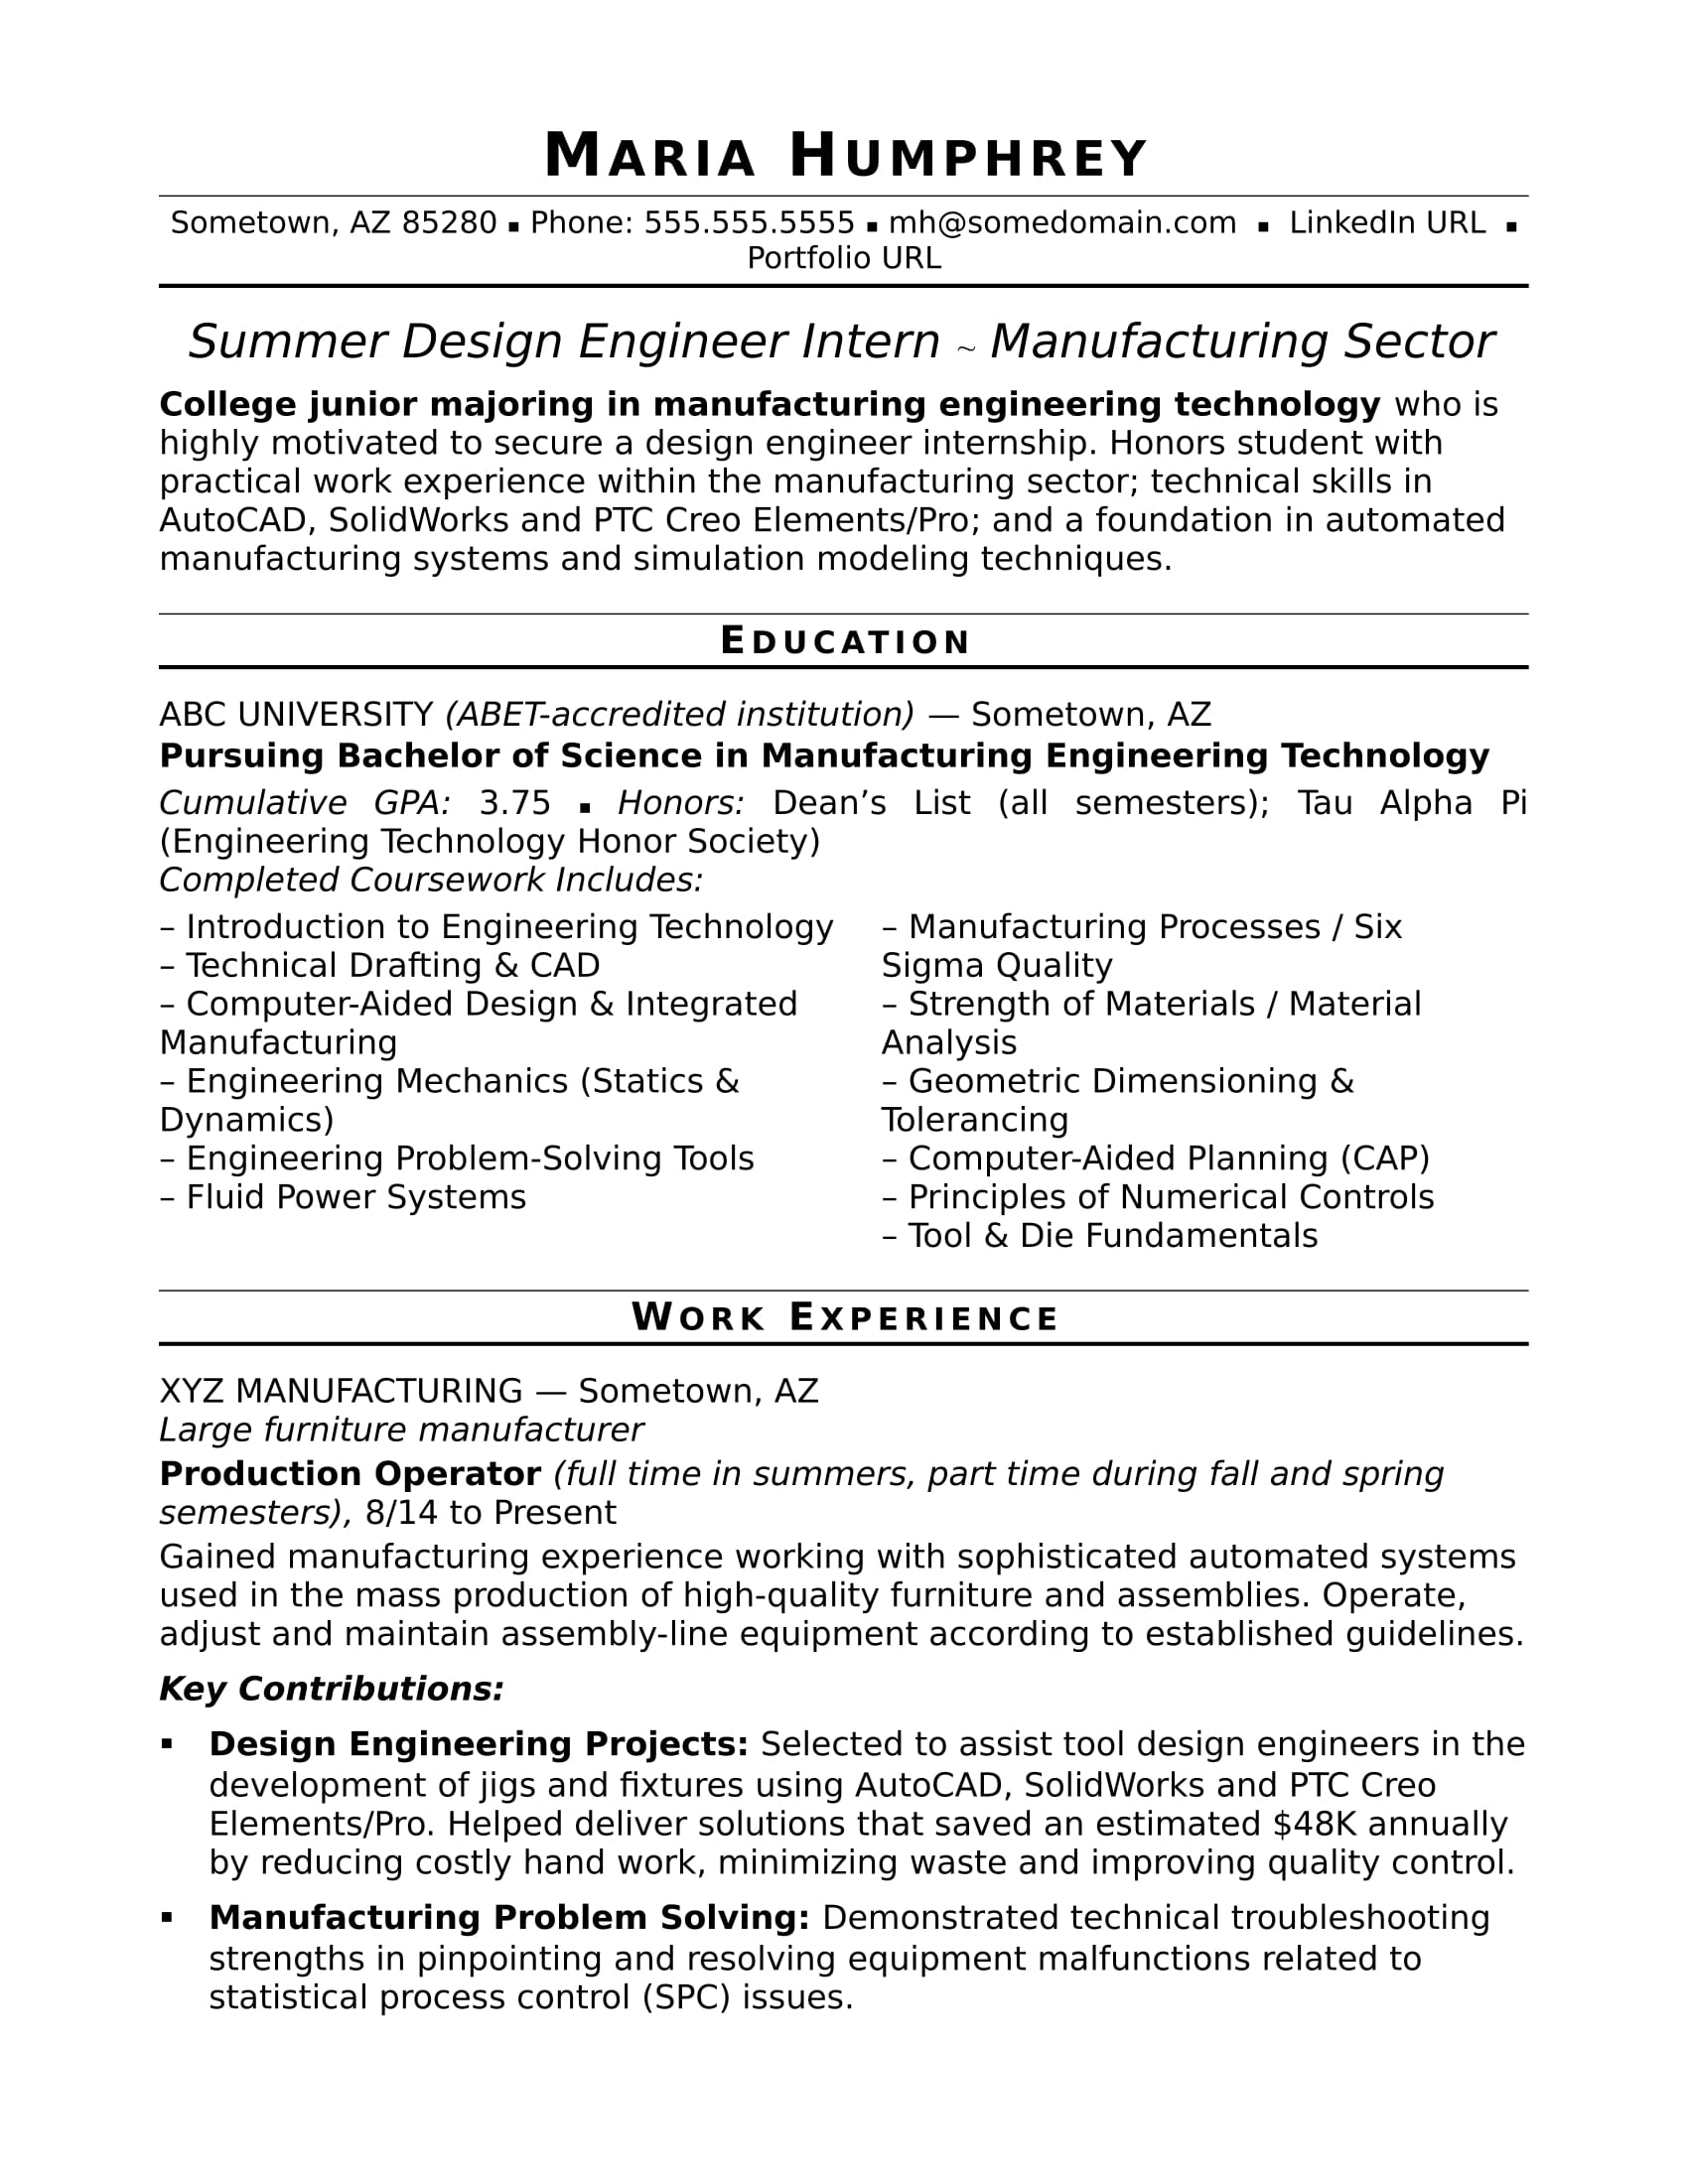 Sample Resume for an Entry-Level Design Engineer | Monster.com